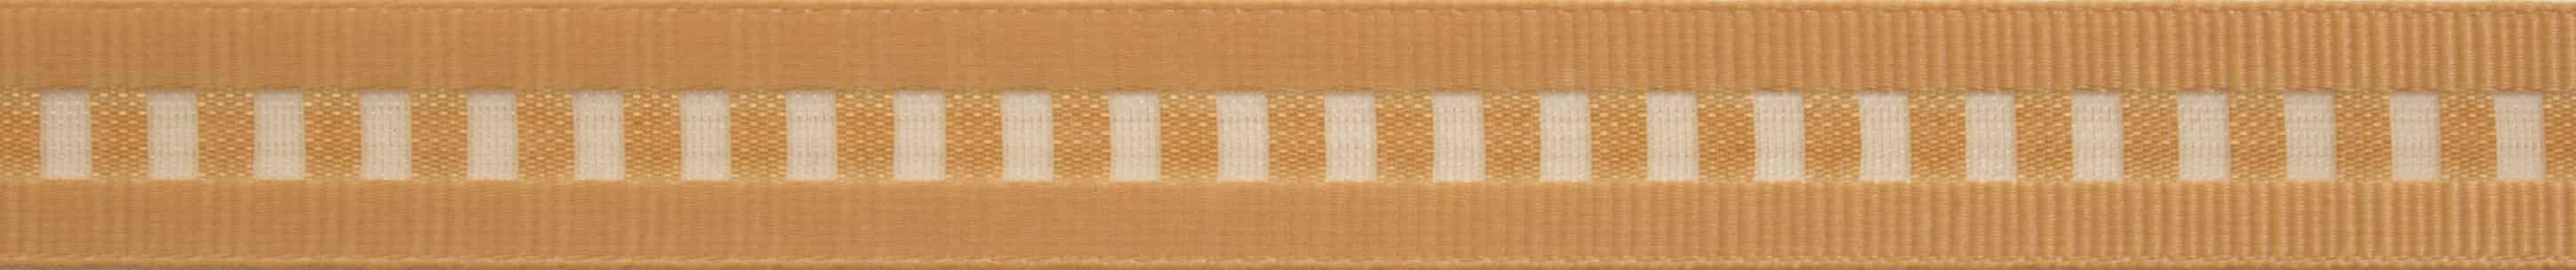 Berisfords Honey Gold Ladder Ribbon - All Widths